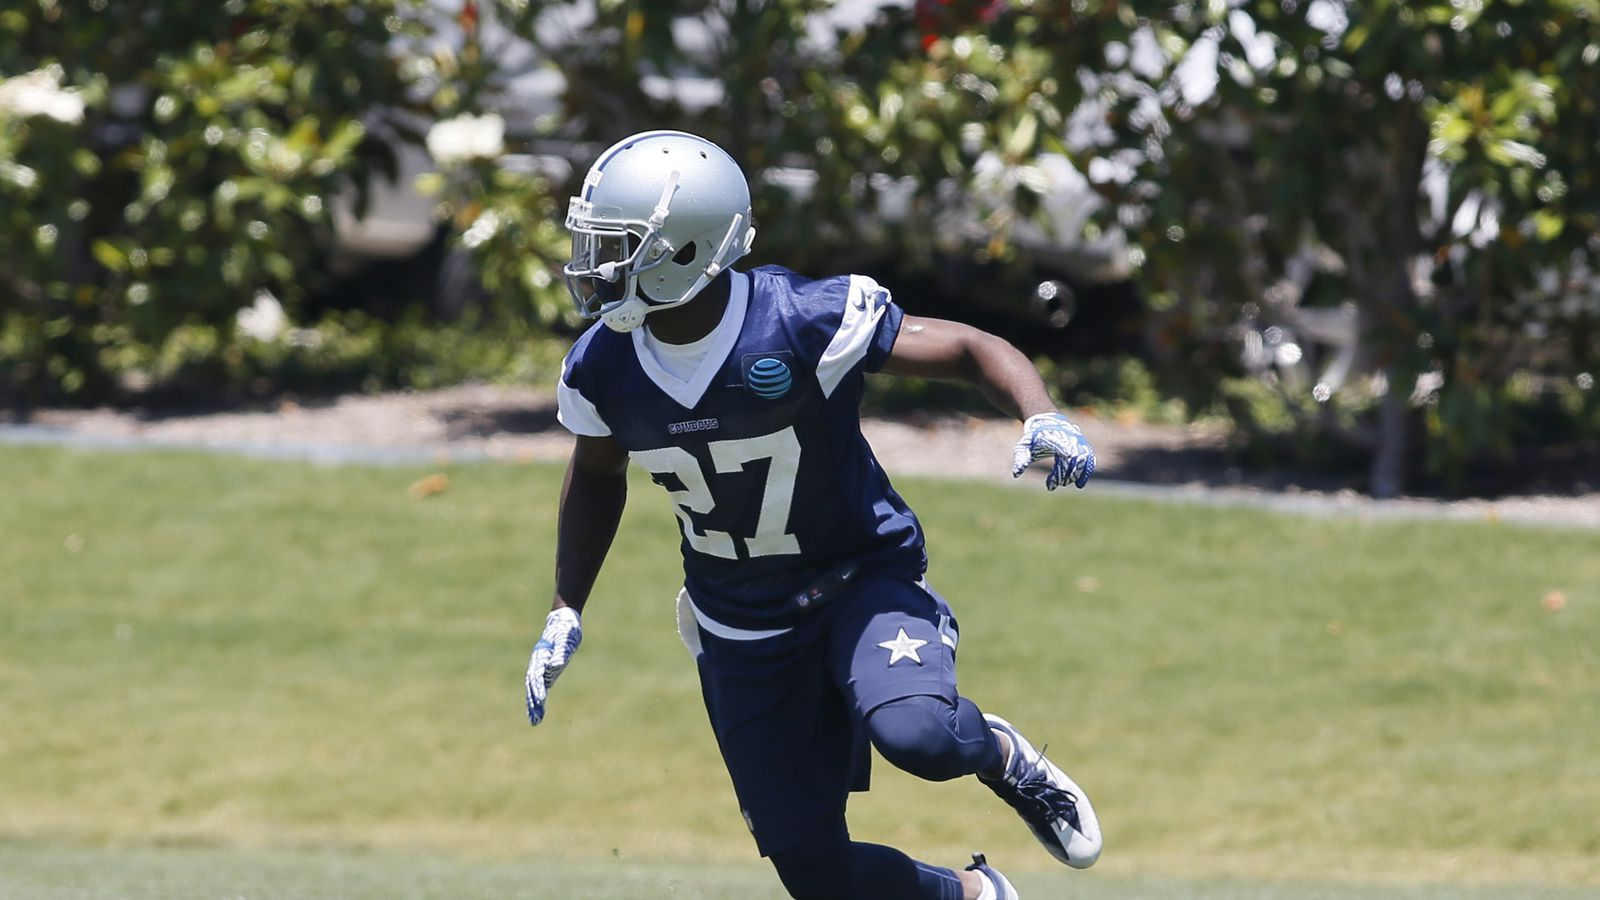 Cowboys' Third-Round Pick Jourdan Lewis Gives Dallas Many Options